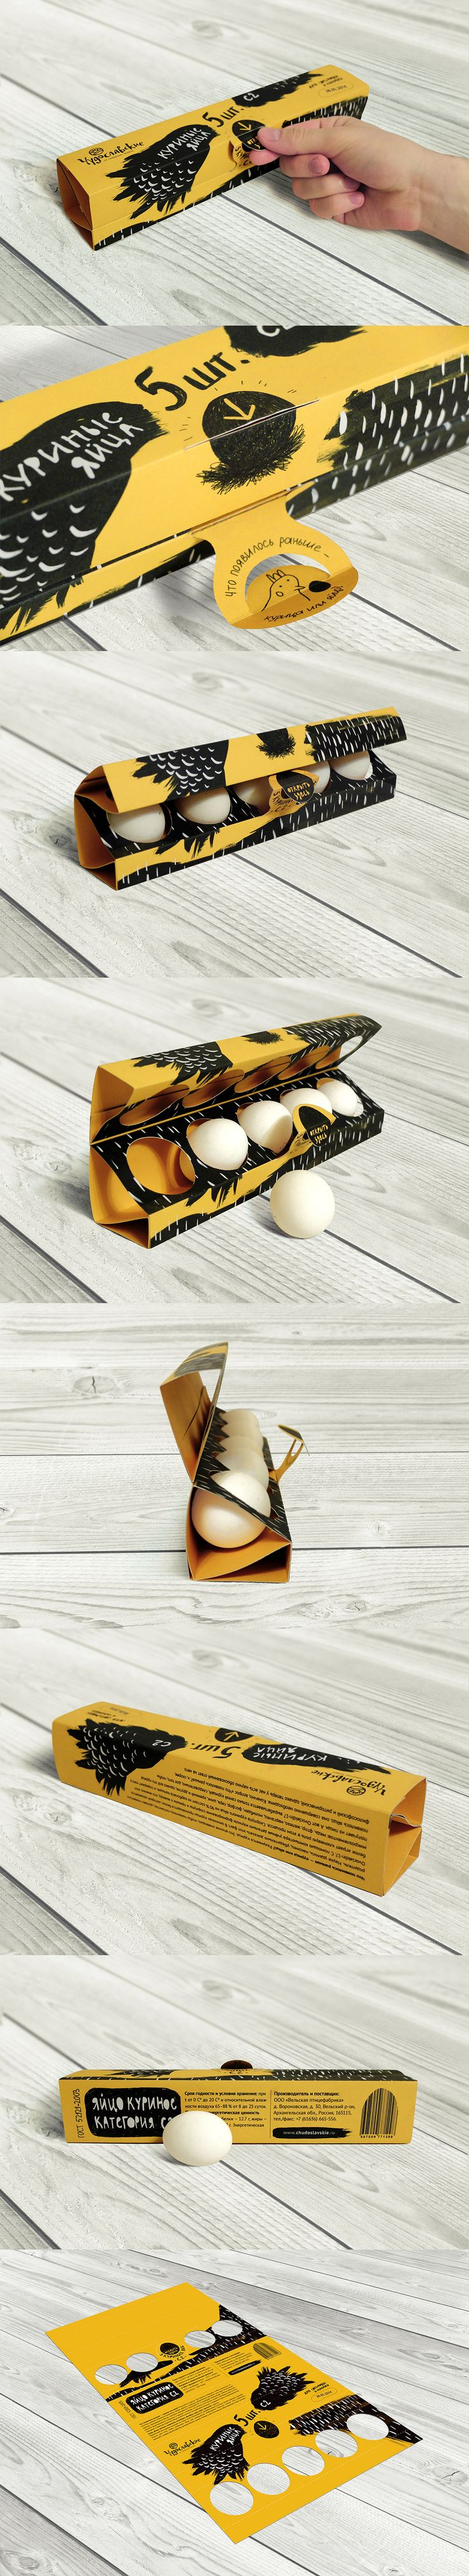 Graphic design, illustration and packaging for eggs on Behance by Alina Kashapova St. Petersburg, Russia. PD